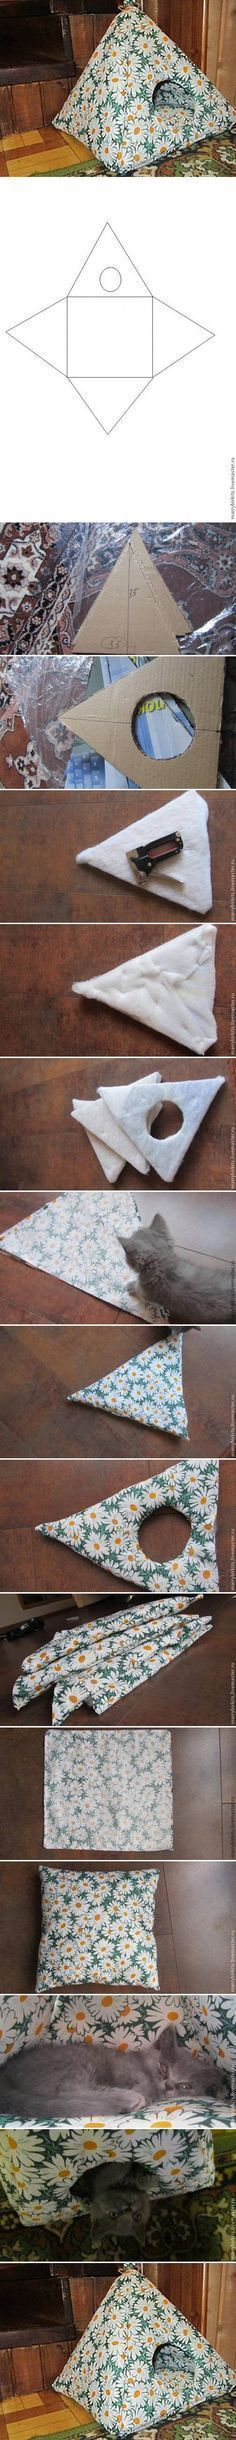 DIY cat house, also great for stray cats so they can stay warm and safe! Repinned from Vital Outburst clothing vitaloutburst.com #catsdiytoy